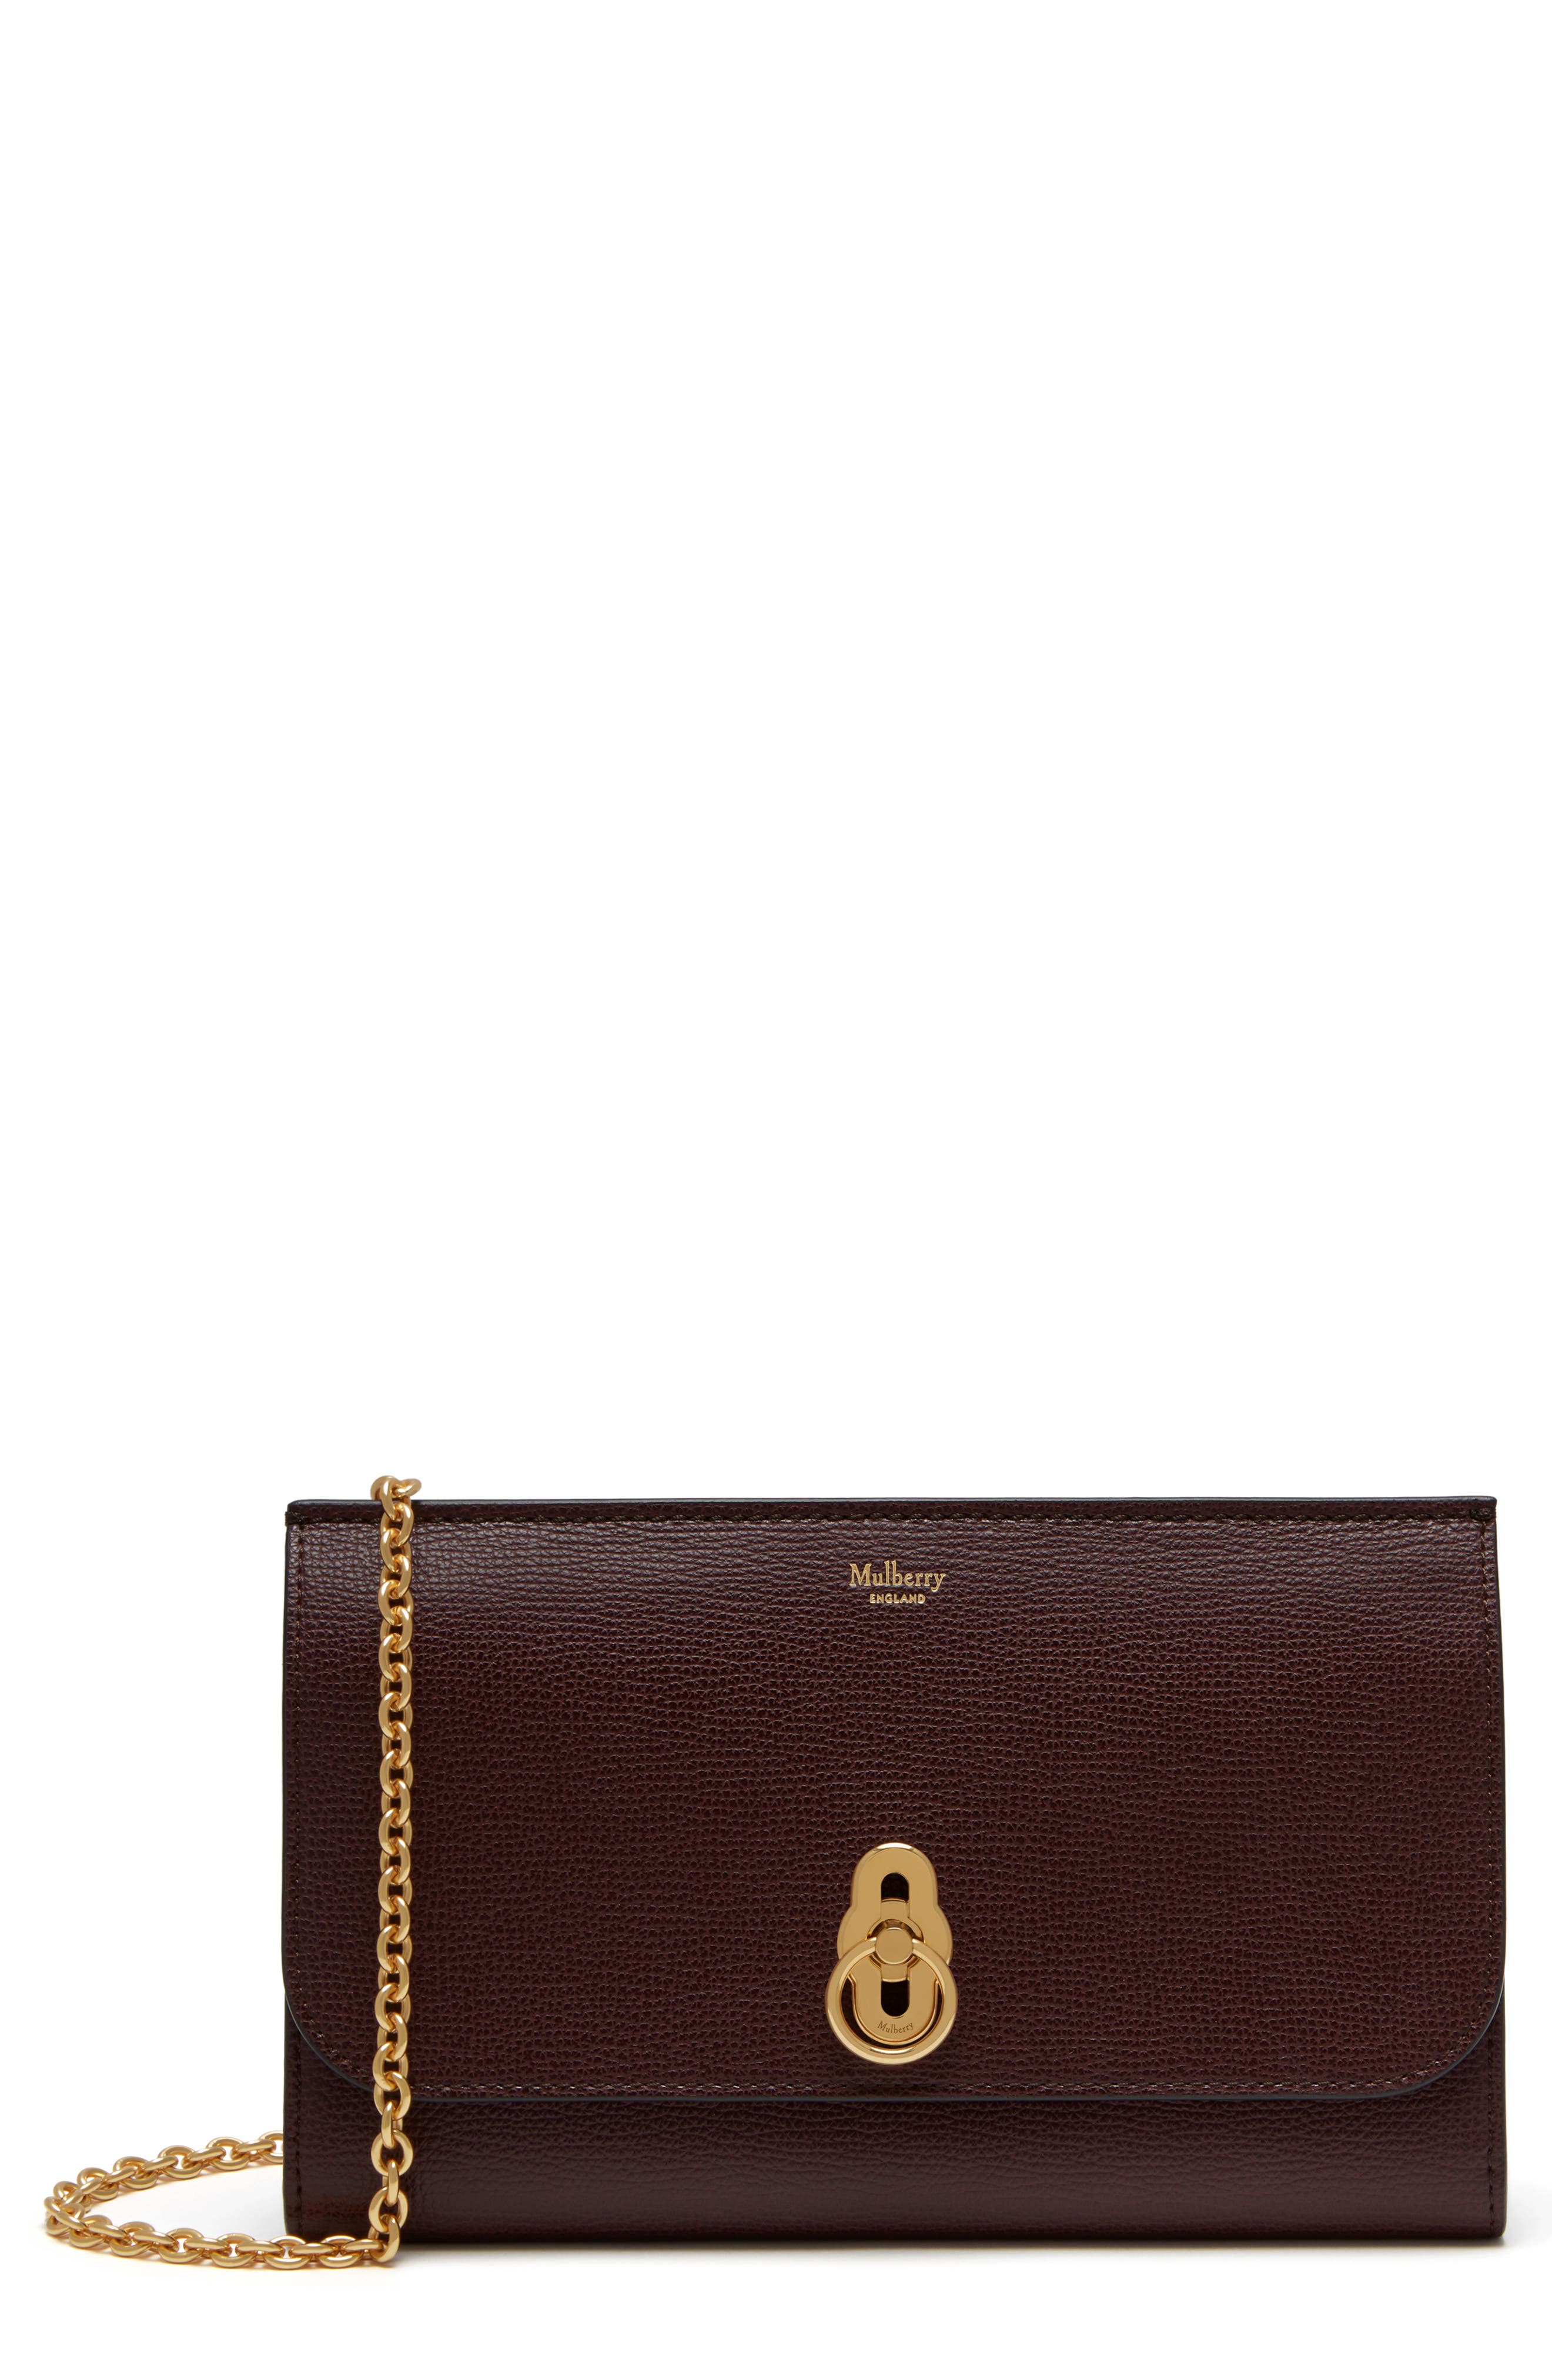 MULBERRY Amberley Calfskin Leather Clutch in Oxblood